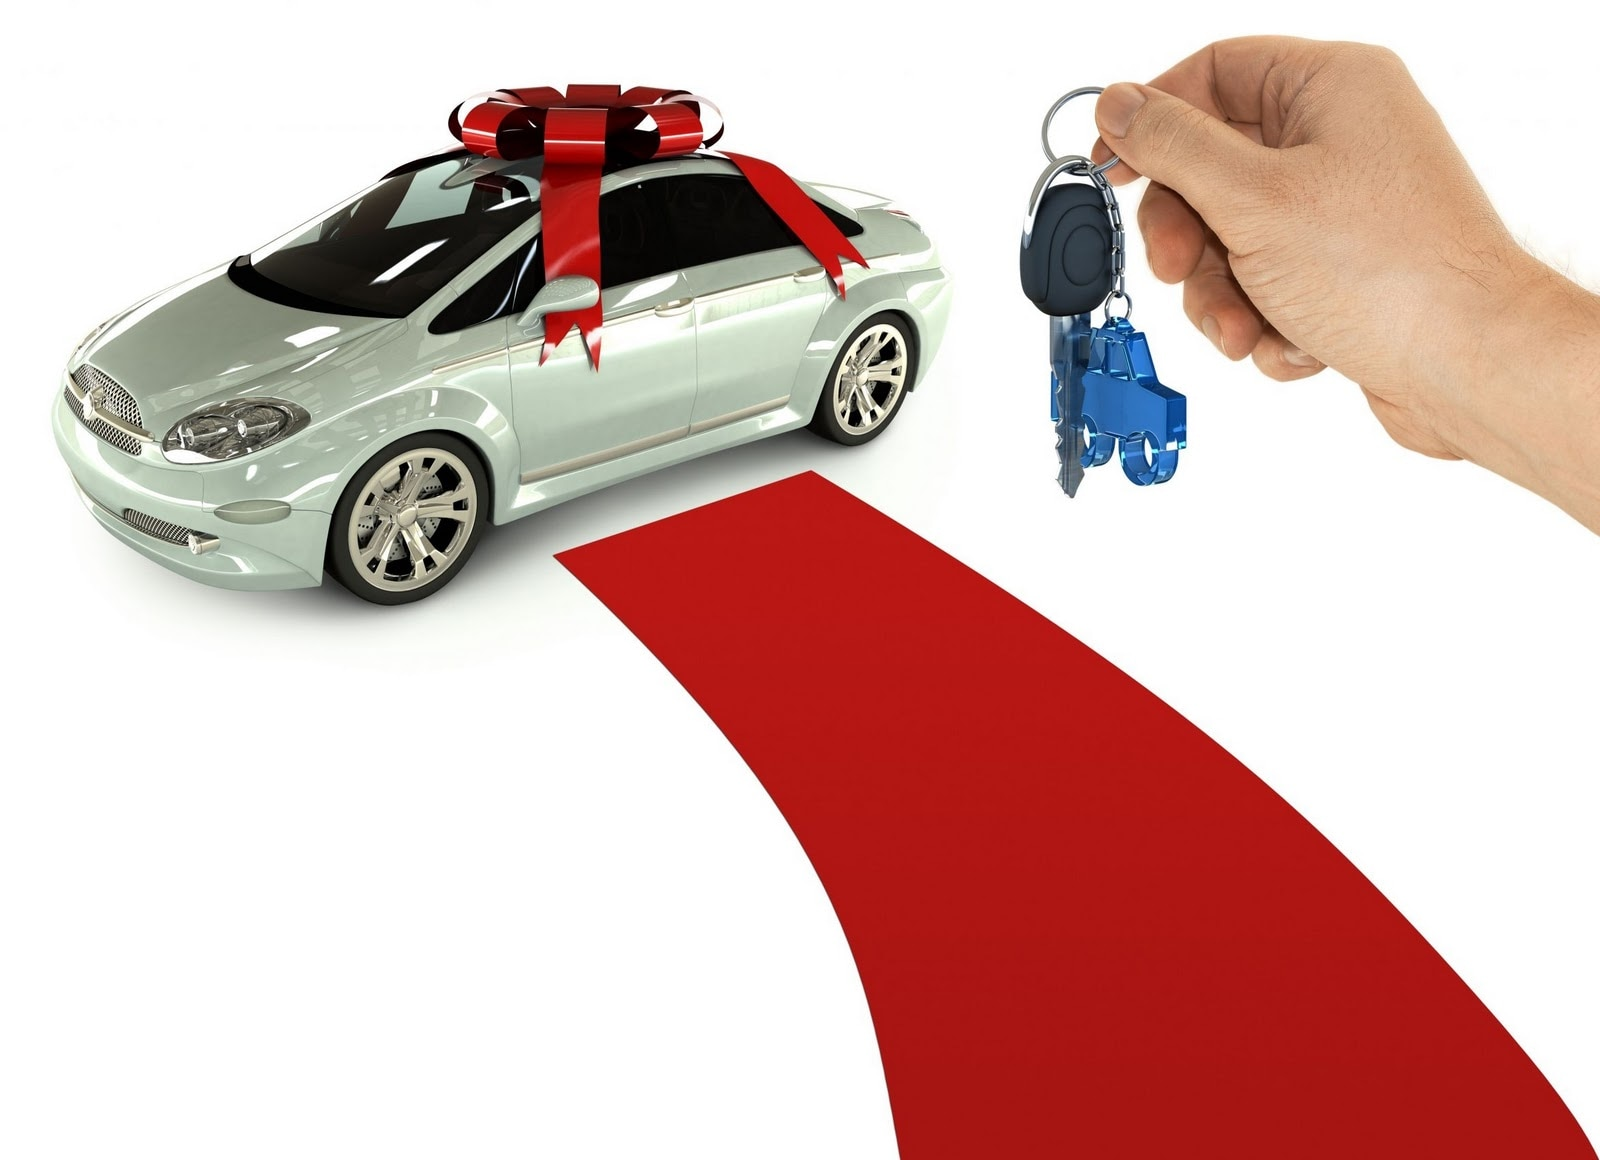 Used  Car Loans in Chennai - We are one of the best Car Loan Provider in Chennai , we do provide loan for most of the models in Chennai.We finance all 4 plus wheel vehicles up to ten year old and limited to 20 lakhs per loan provided it meets our norms through all the branches in Tamilnadu.